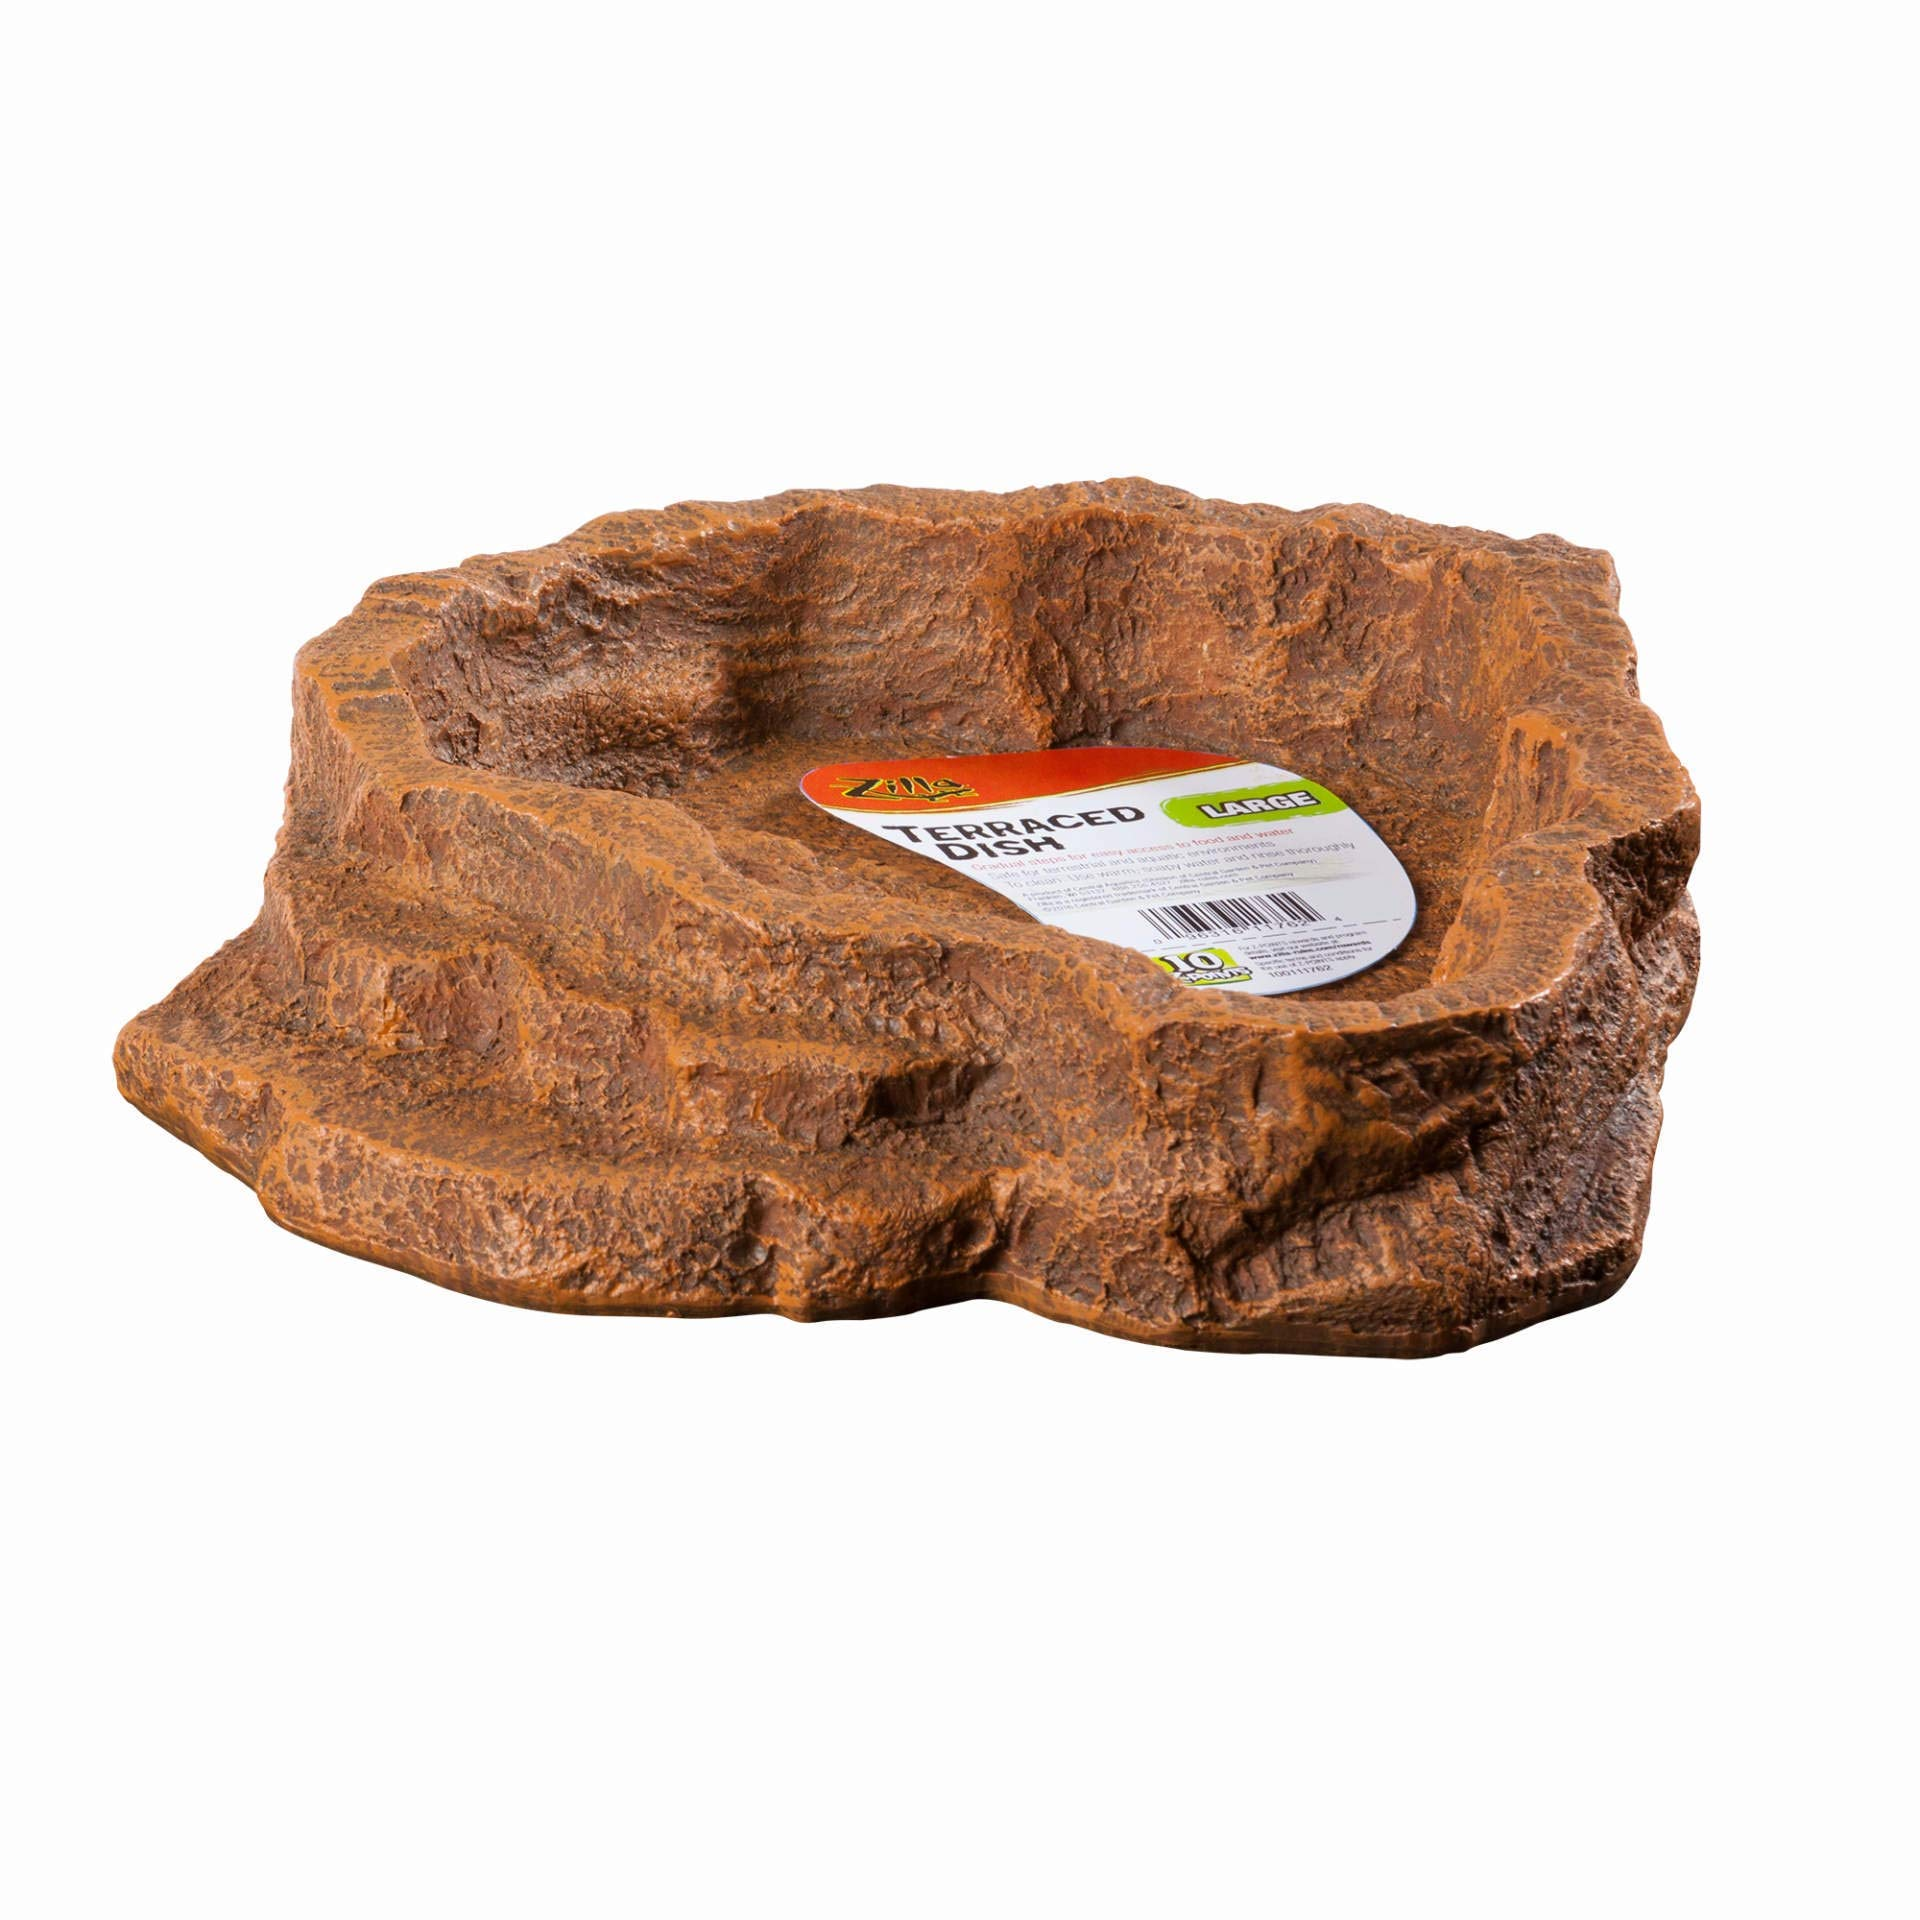 Zilla Reptile Terrarium Terraced Dish, Large (Colors Vary) by Zilla